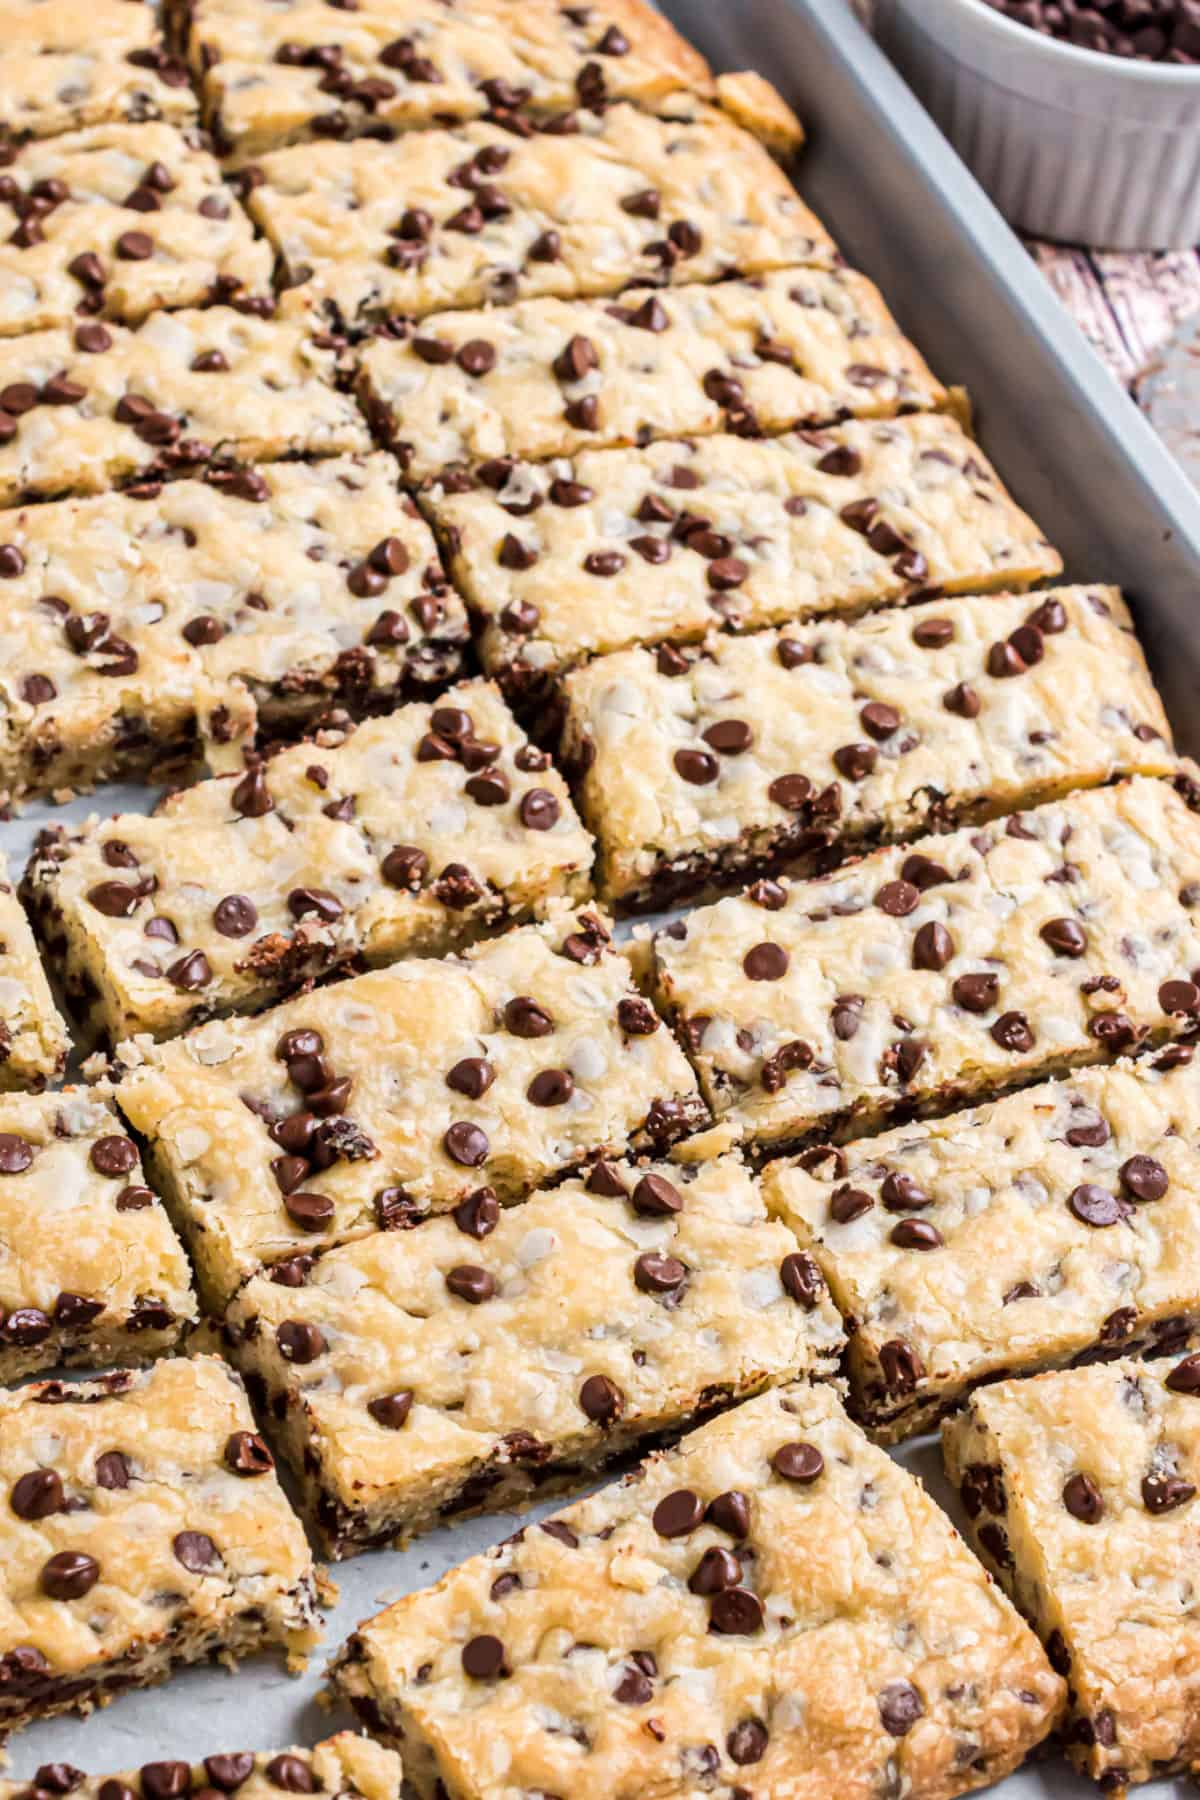 Rectangle shortbread cookies with chocolate chips on a baking sheet.